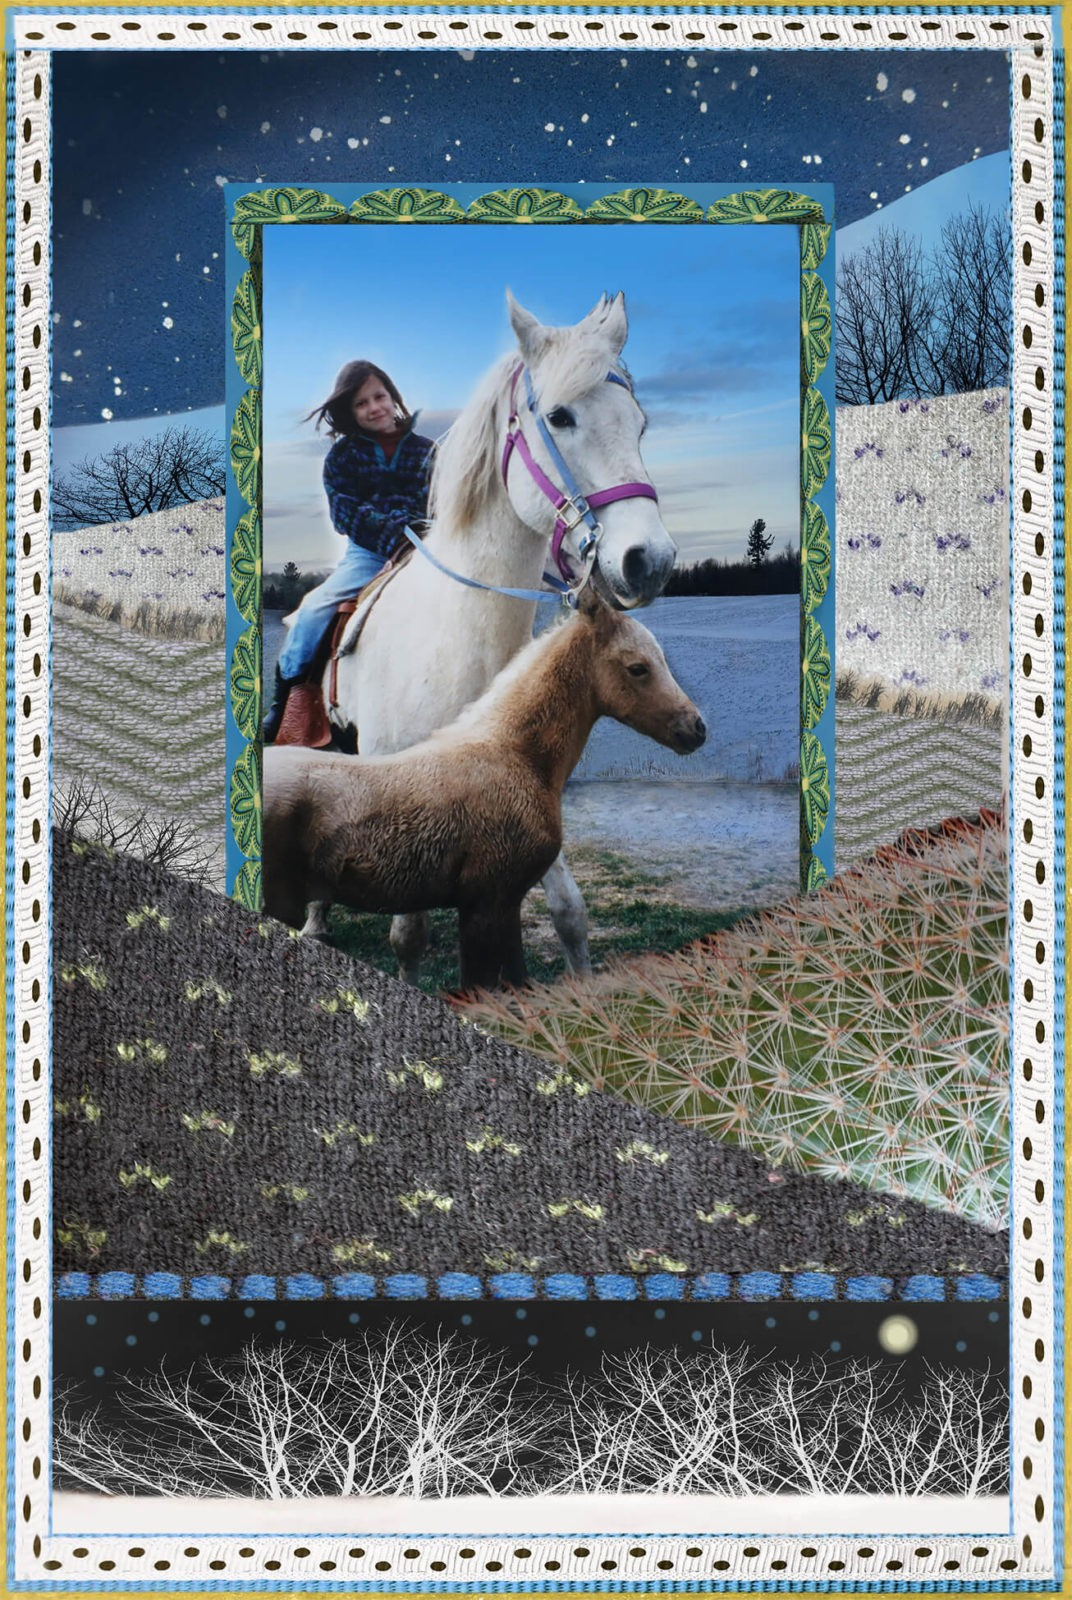 Robin Botie of Ithaca, New York, photoshops borders around a picture of her daughter Marika Warden riding in fields with horses.